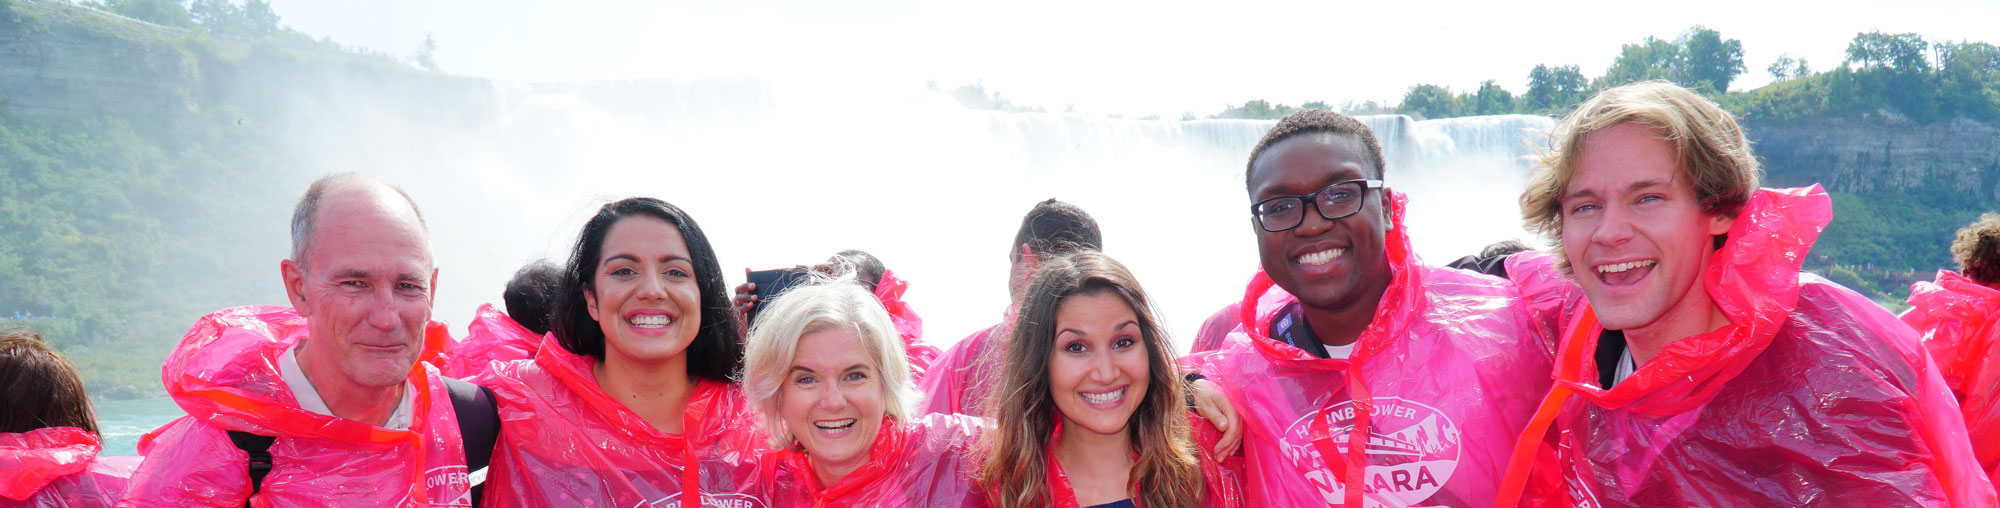 niagara falls group tour on hornblower boat